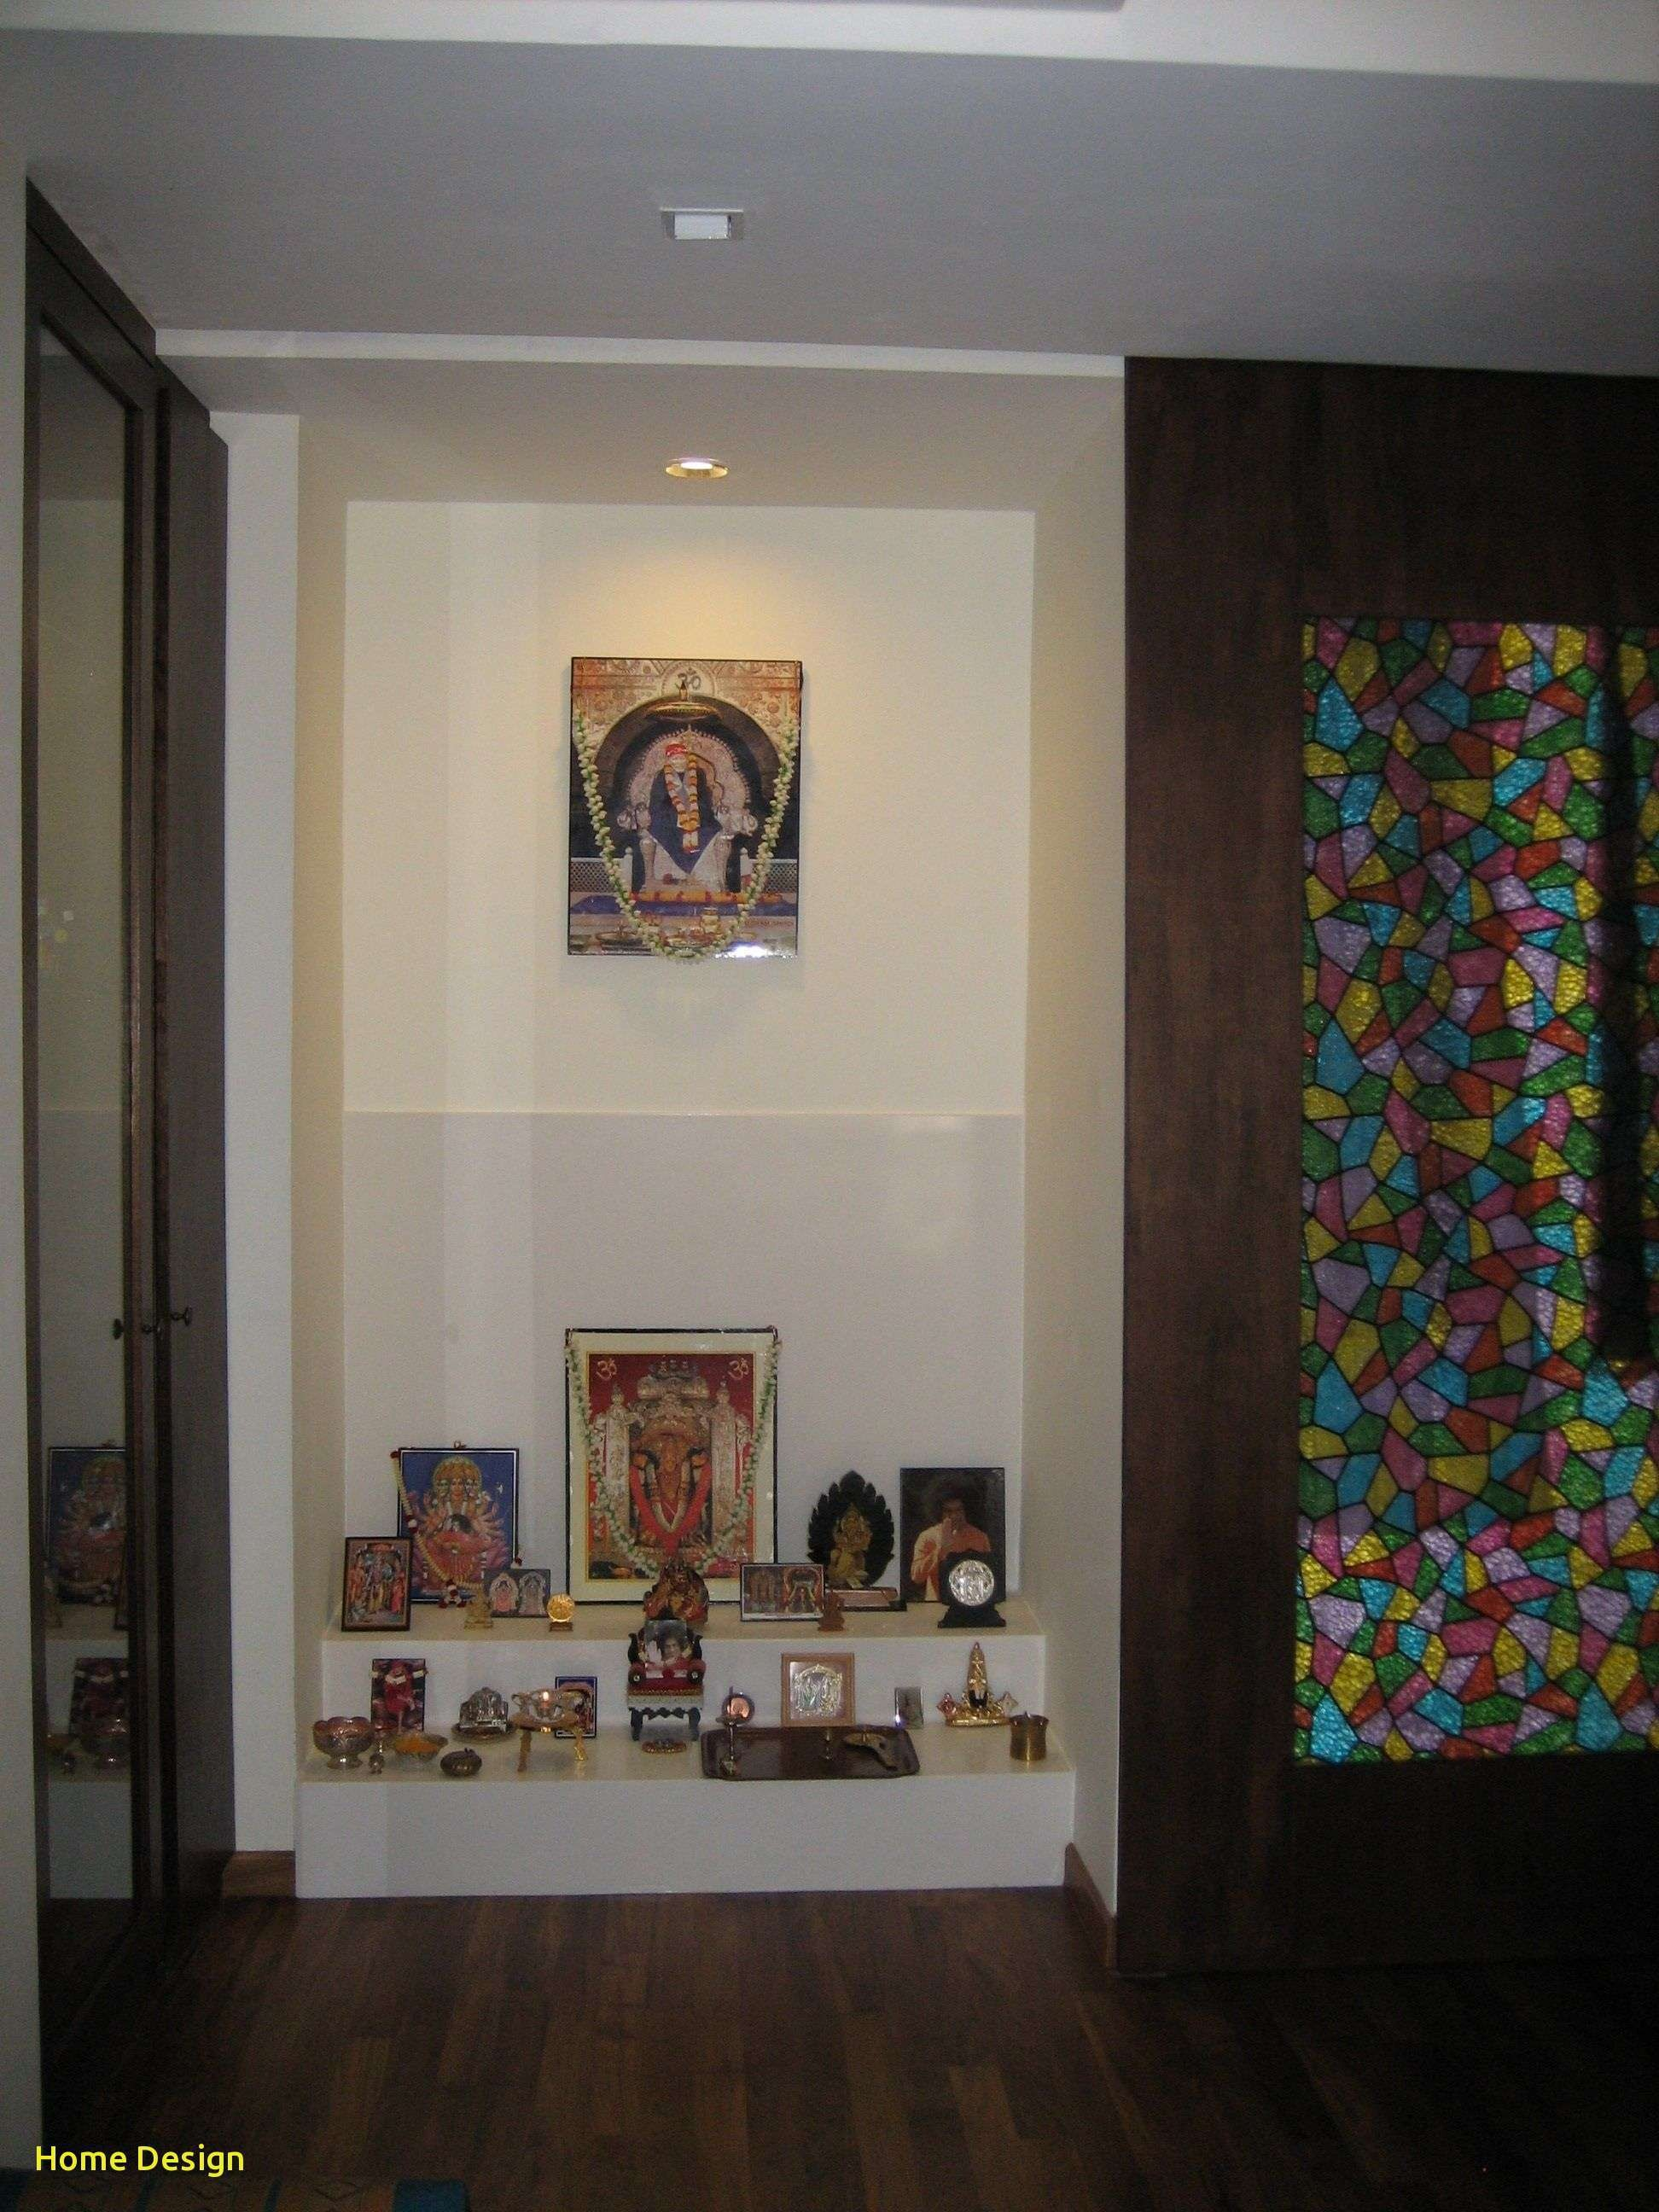 Kitchen with Pooja Room Designs New Puja Room Design Home Mandir Lamps Doors Vastu Idols Placement